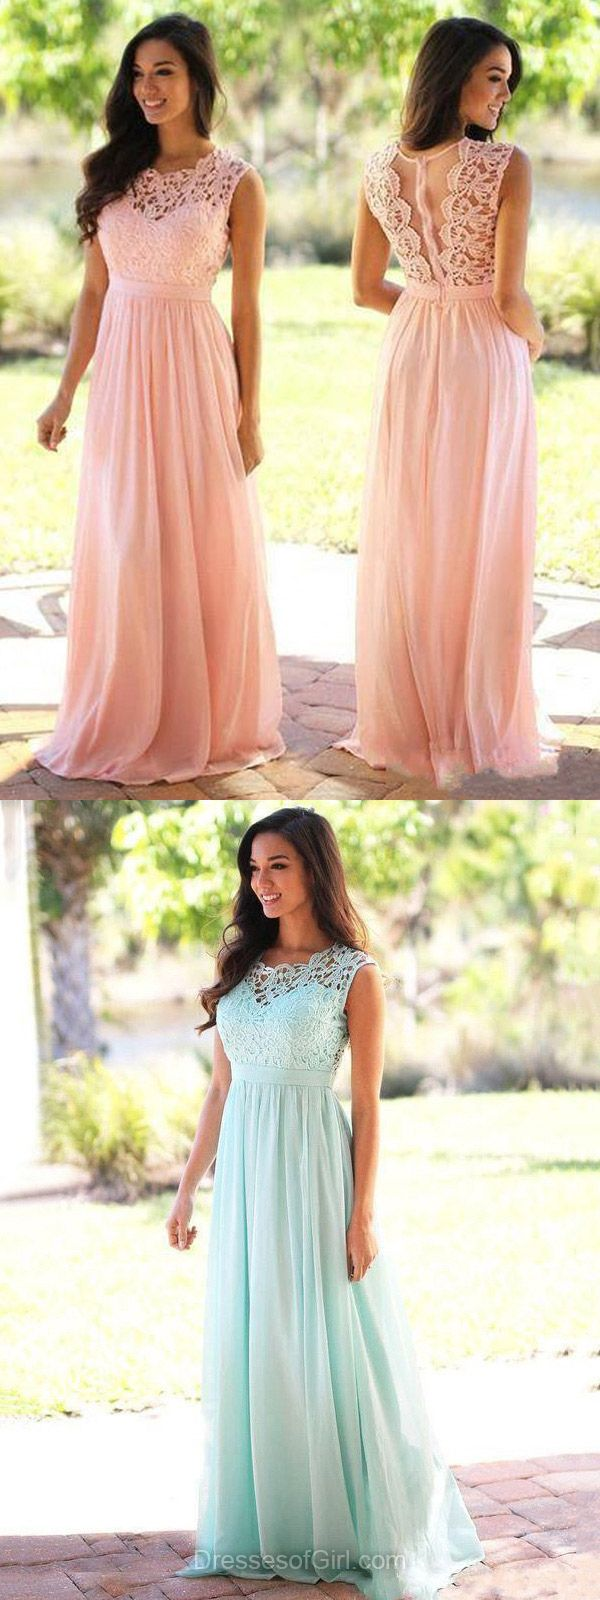 Affordable Long Prom Dresses, A-line Scoop Neck Formal Evening Gowns, Lace Chiffon Women Party Dress